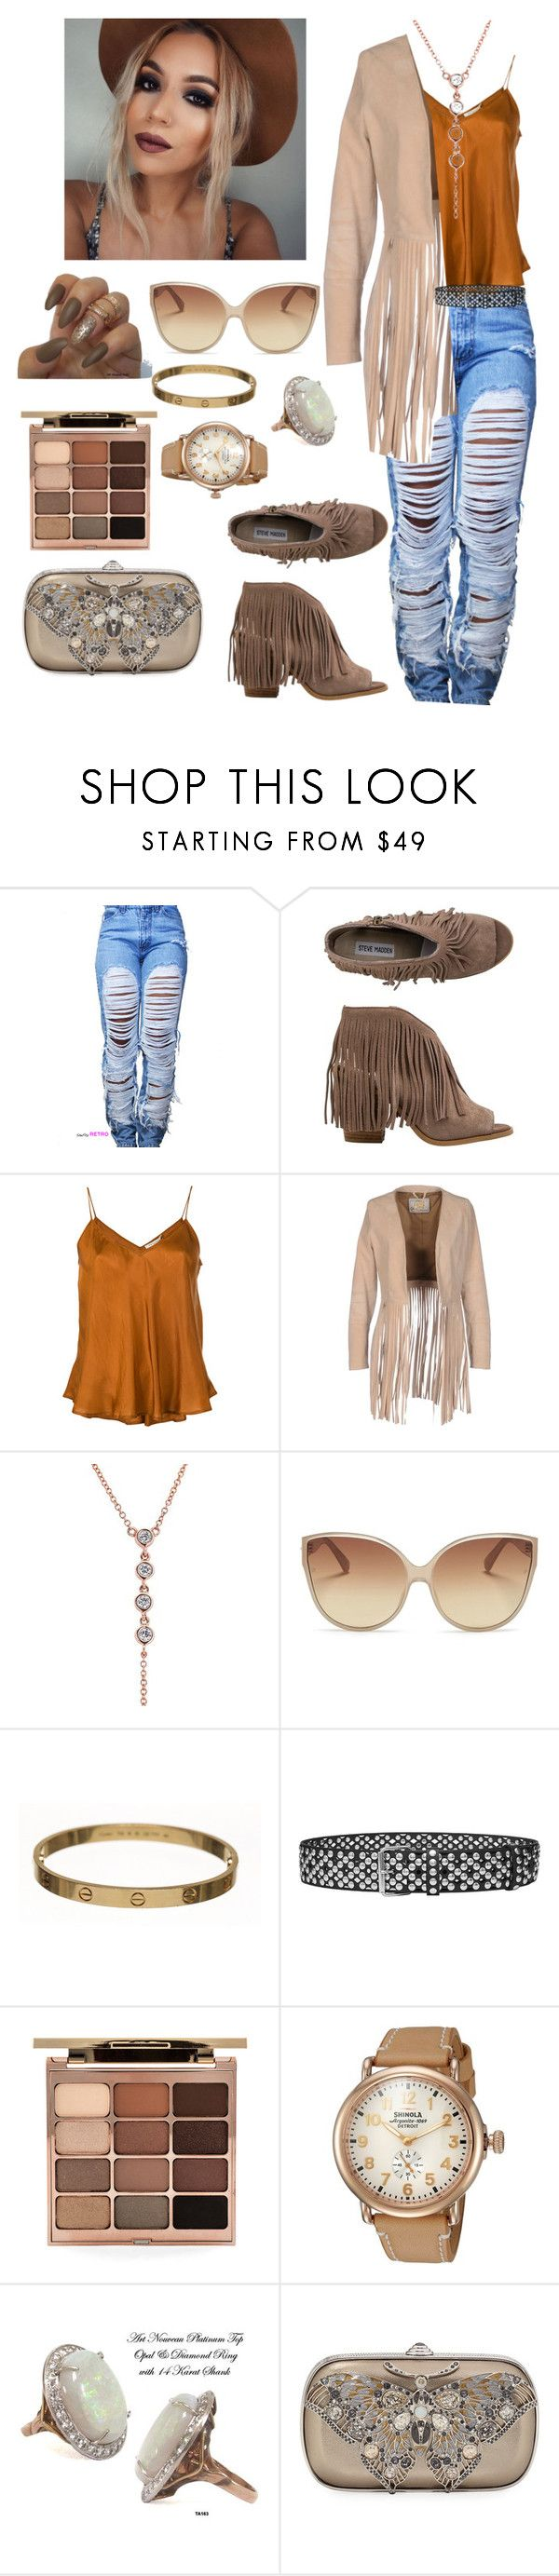 """Fringe"" by joy-chiquita-godboldo ❤ liked on Polyvore featuring Steve Madden, Mes Demoiselles..., VINTAGE DE LUXE, Anne Sisteron, Linda Farrow, Cartier, Faith Connexion, Stila, Shinola and Judith Leiber"